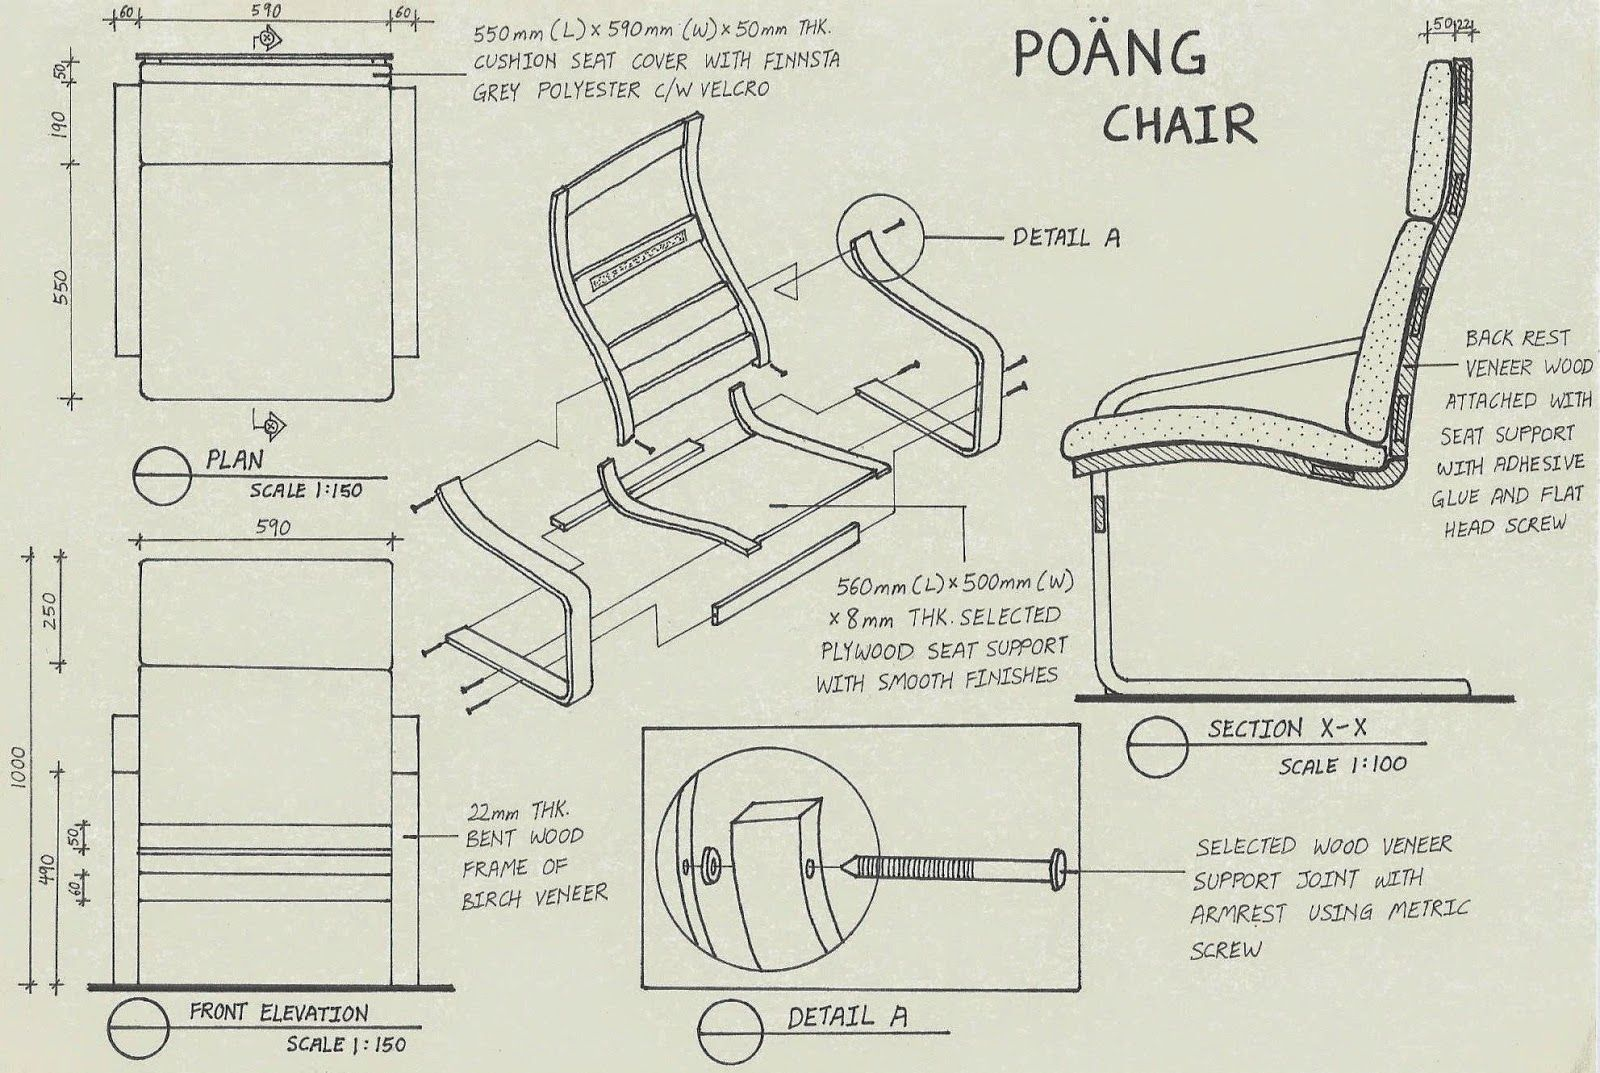 Lounge chair top view drawing - Detail Drawing For Poang Series Chair By Ikea This Assembly Drawing Consists Of Plan View Front Elevation Cut Section And Blo